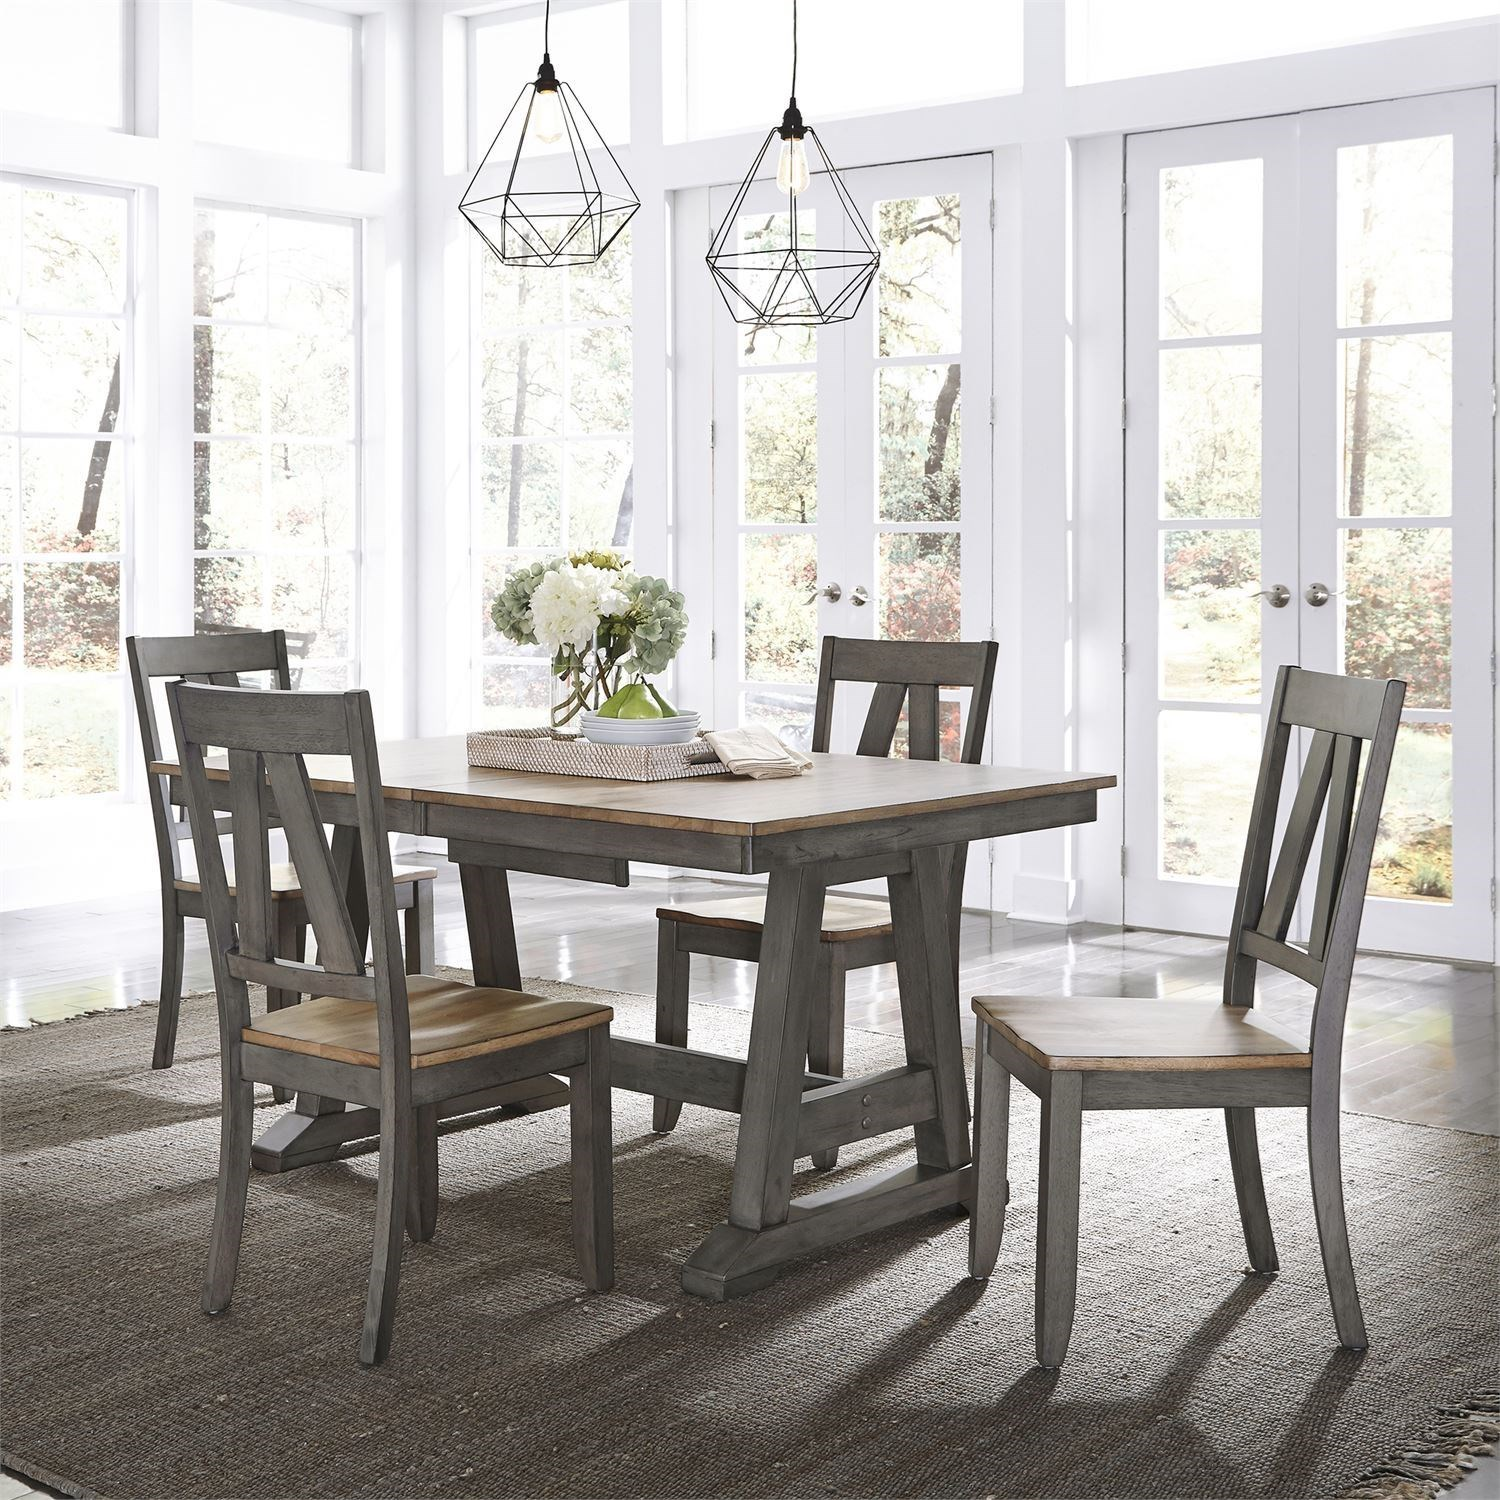 Lindsey Farm 5-Piece Trestle Table Set by Liberty Furniture at Johnny Janosik